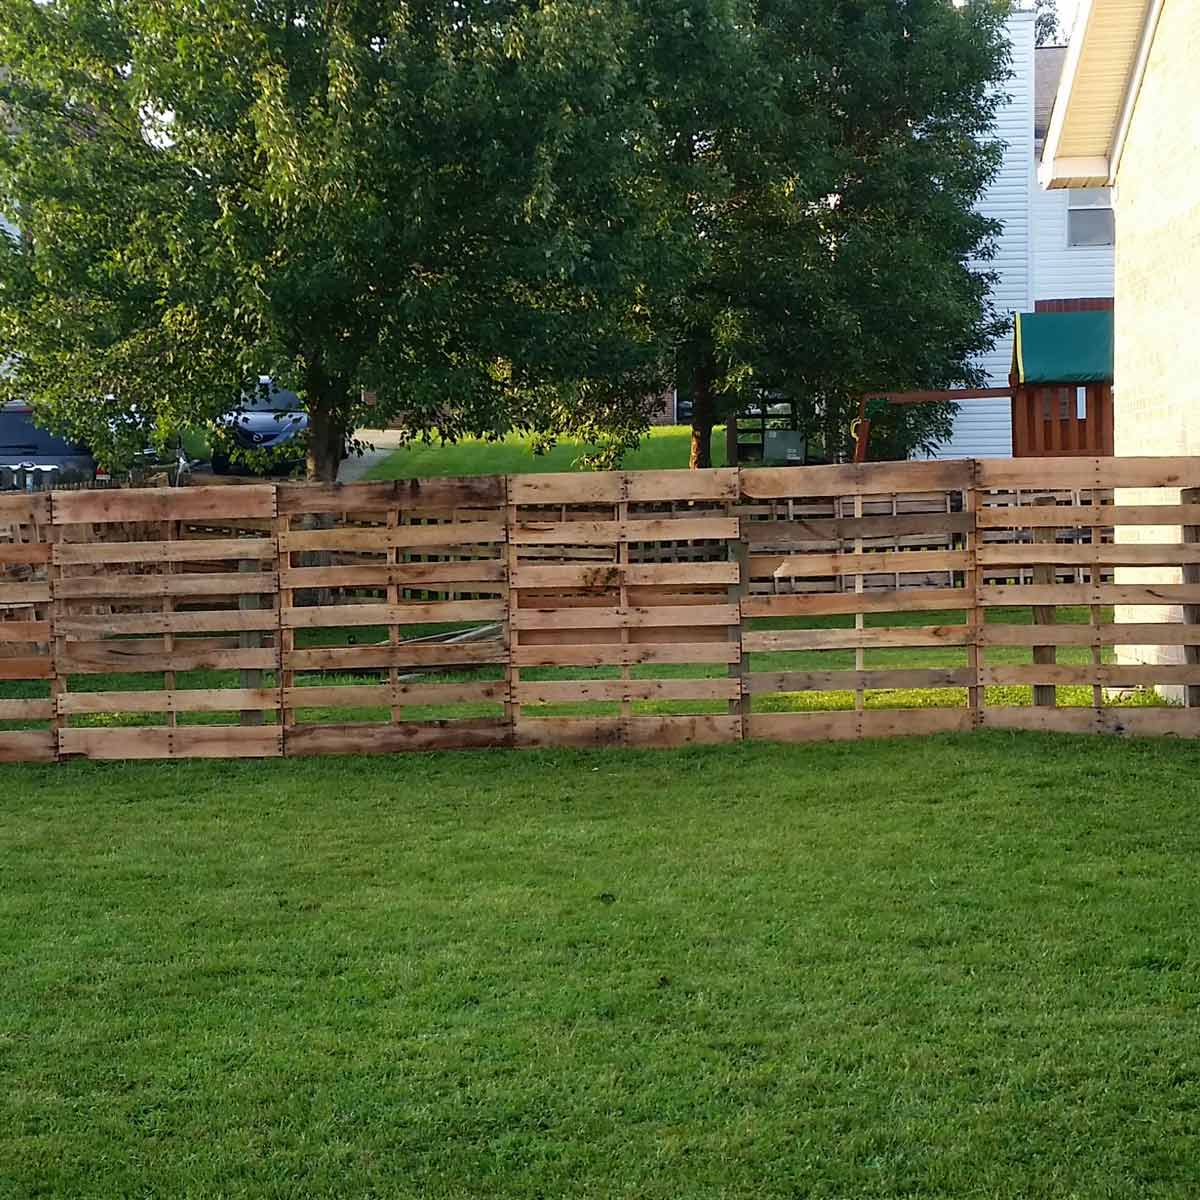 Yard Fencing 10 Modern Fence Ideas Family Handyman with regard to 13 Awesome Ways How to Makeover Backyard Fencing Options